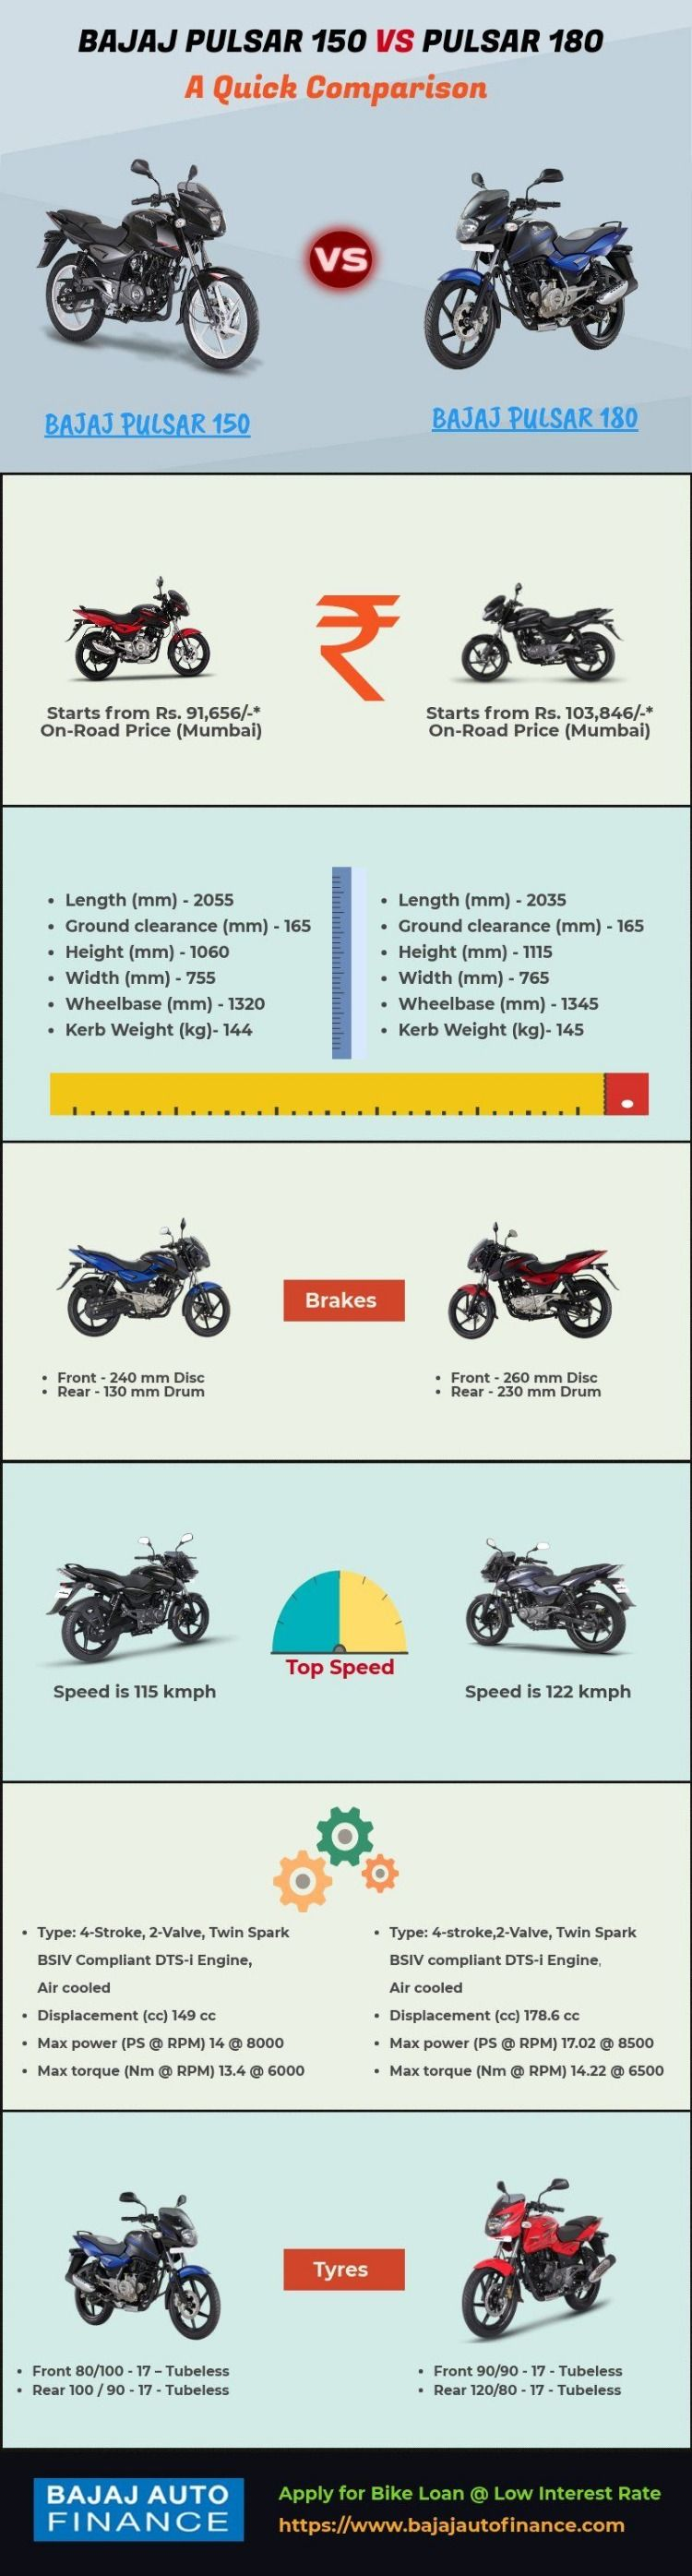 No Need To Confuse Between Bajaj Pulsar 150 And 180 Look Here For